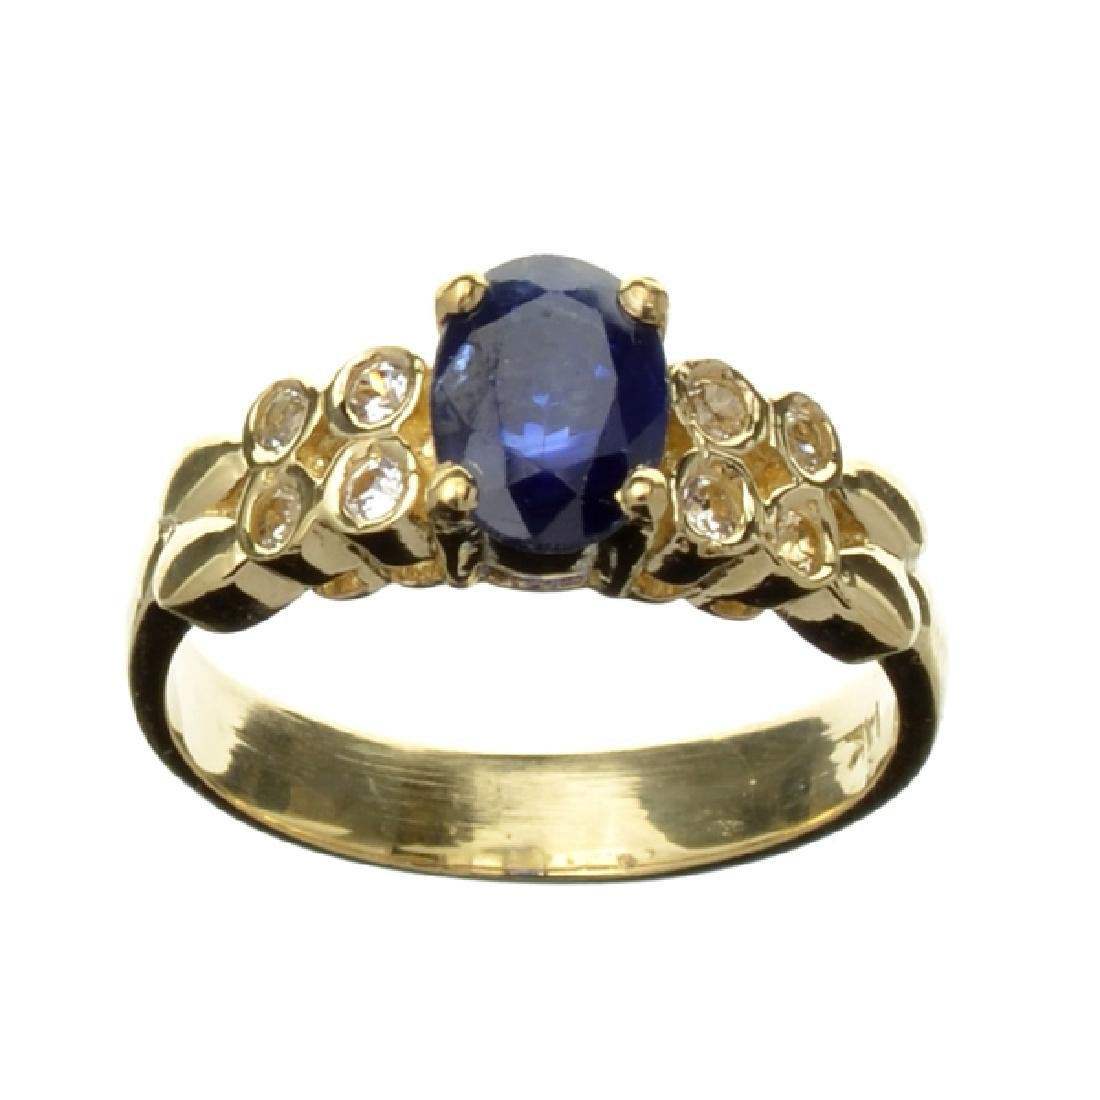 APP: 1.2k 14 kt. Gold, 1.18CT Bue And White Sapphire